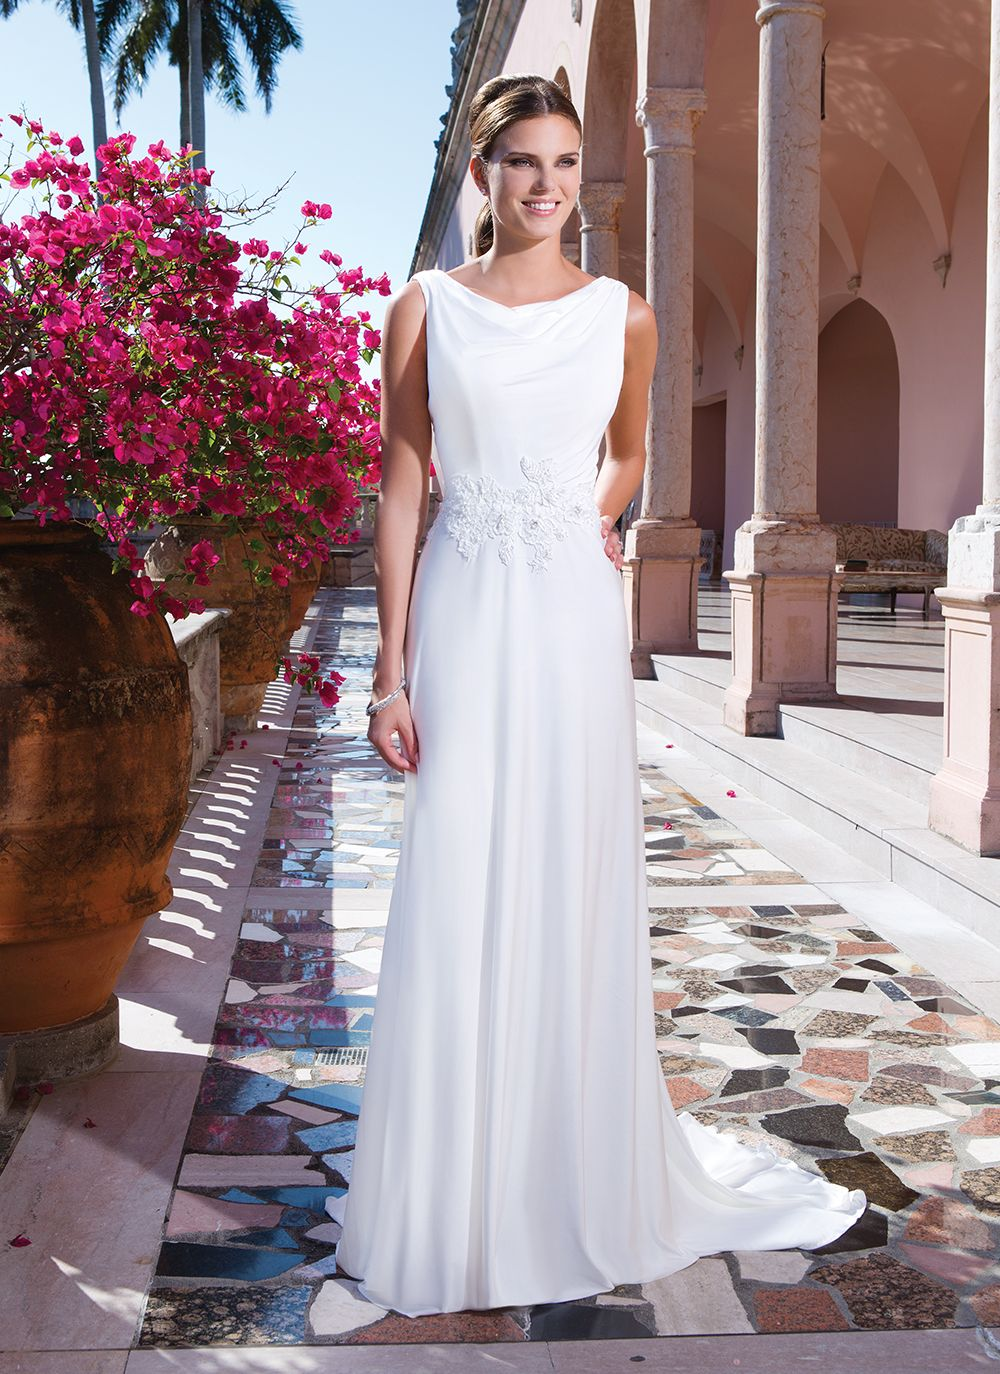 Sweetheart Gowns Style 6055 Jersey straight wedding dress